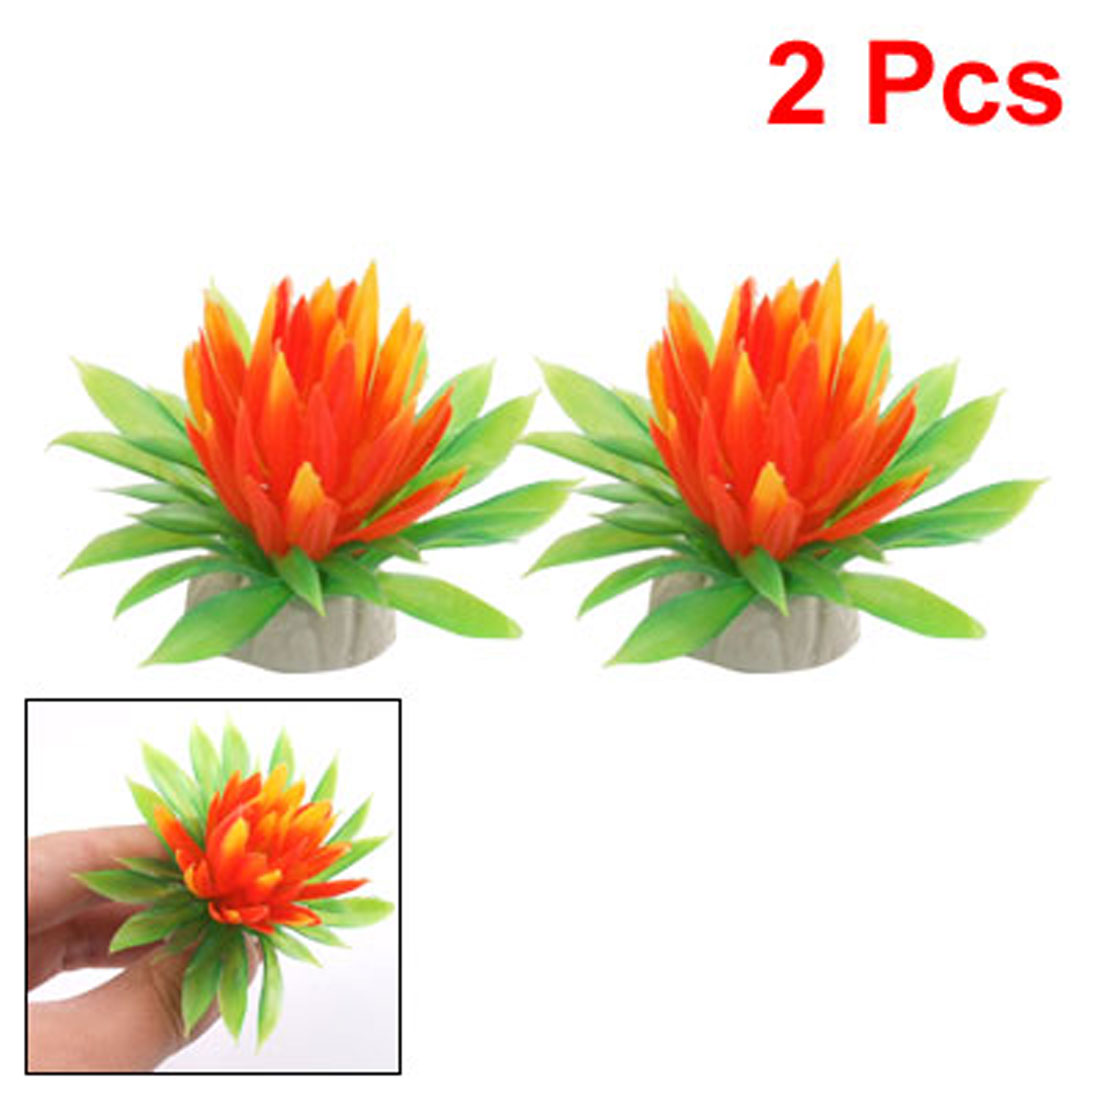 2 Pcs Plastic Underwater Ornament Lotus Plant for Tank Aquarium